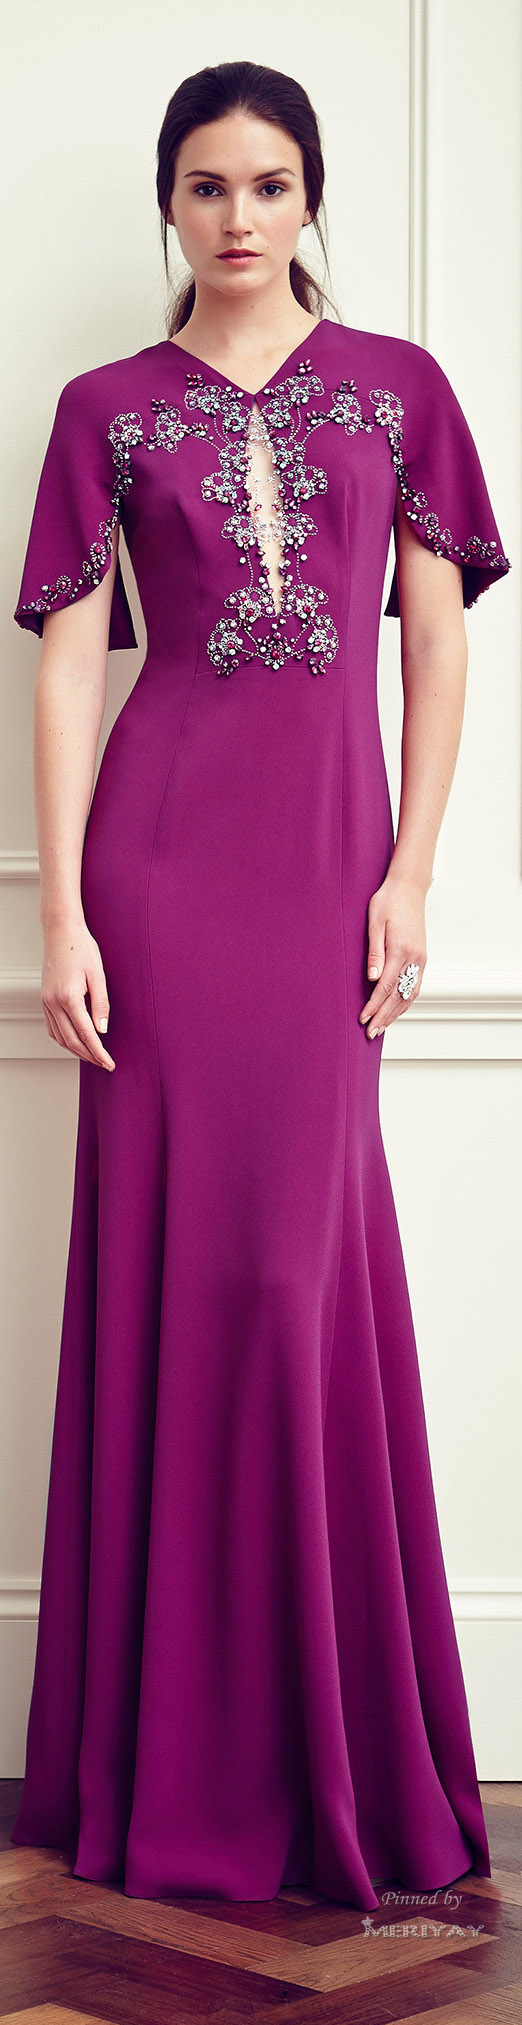 Jenny Packham Resort 2015. I really like this bright, bold Bohemian ...